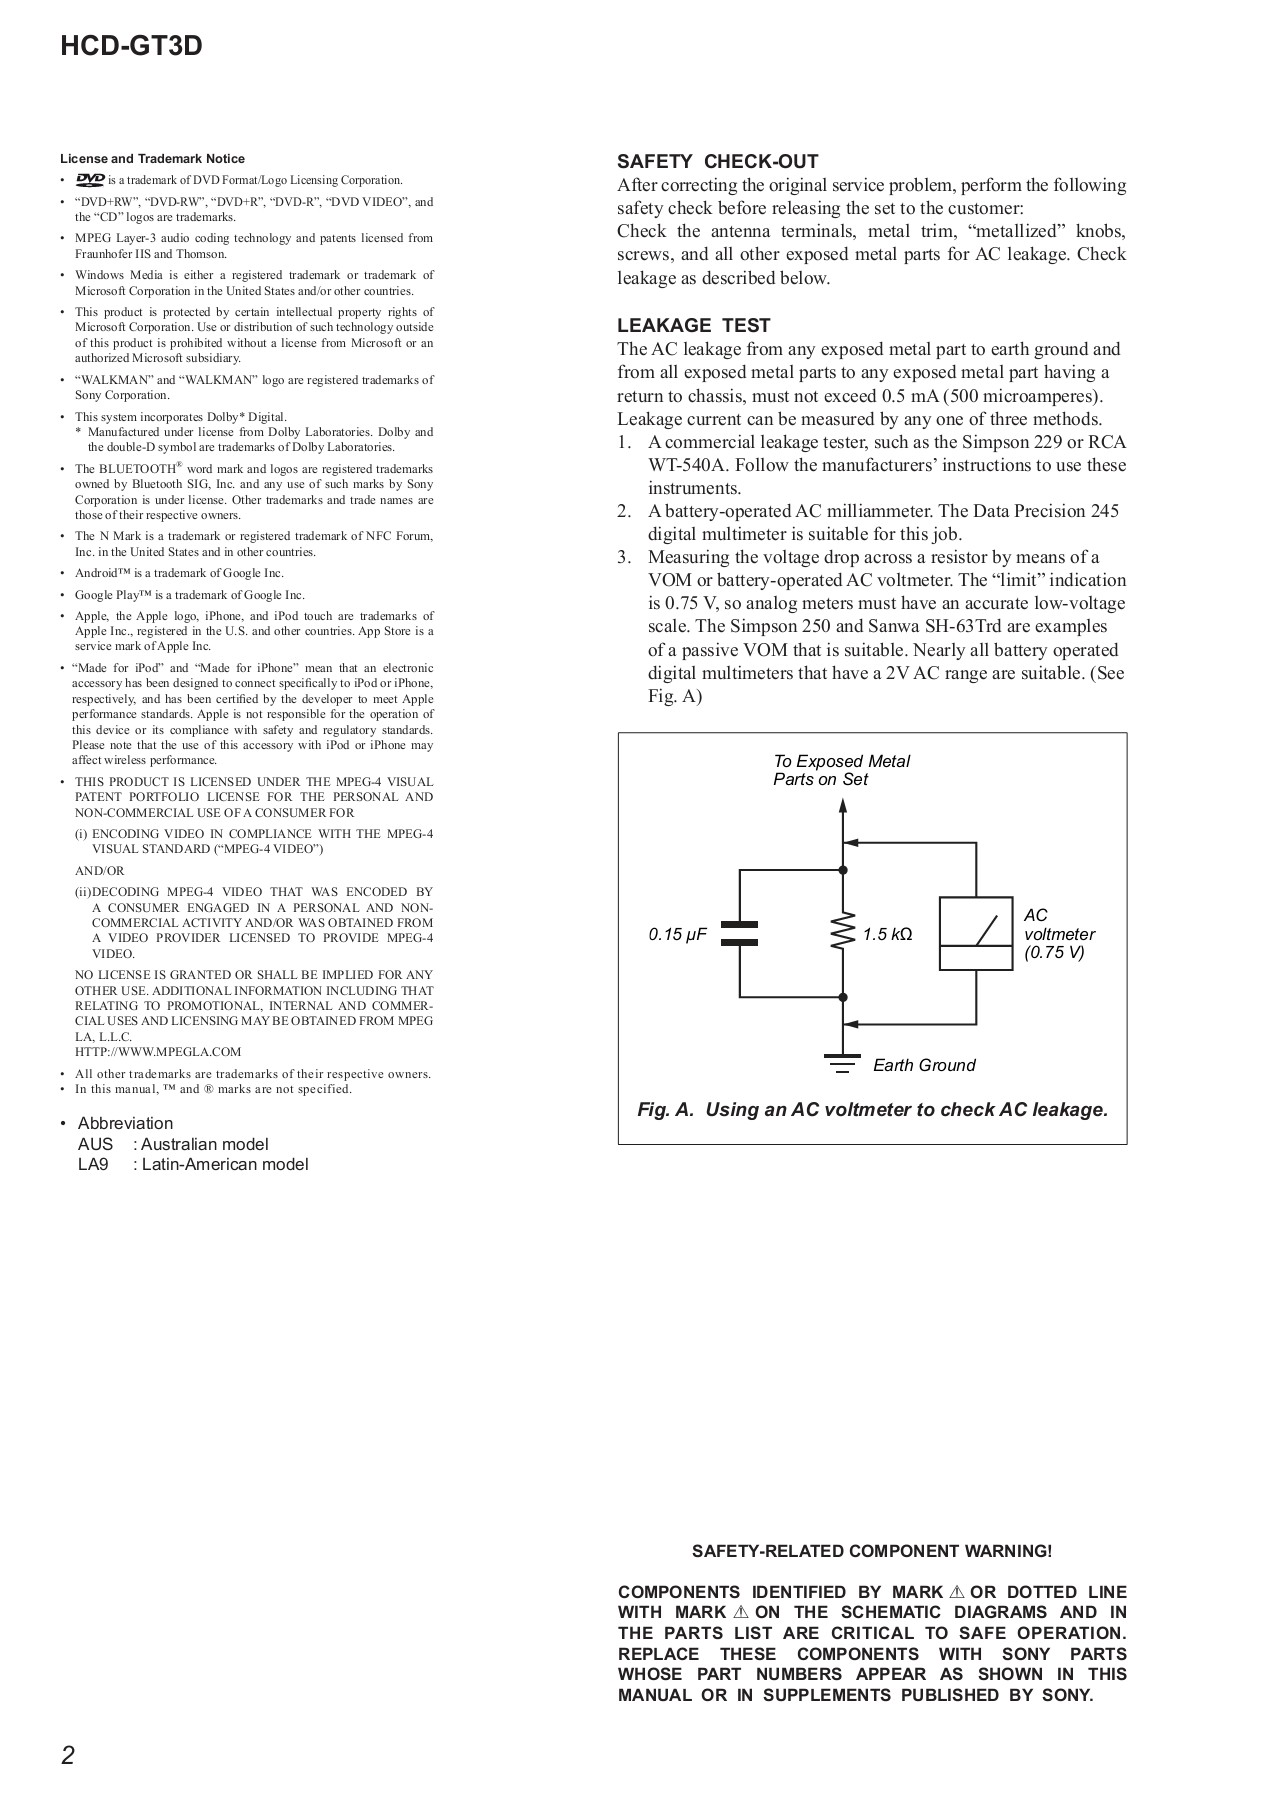 HCD-GT3D (989066901) Pages 1 - 50 - Text Version | AnyFlip on